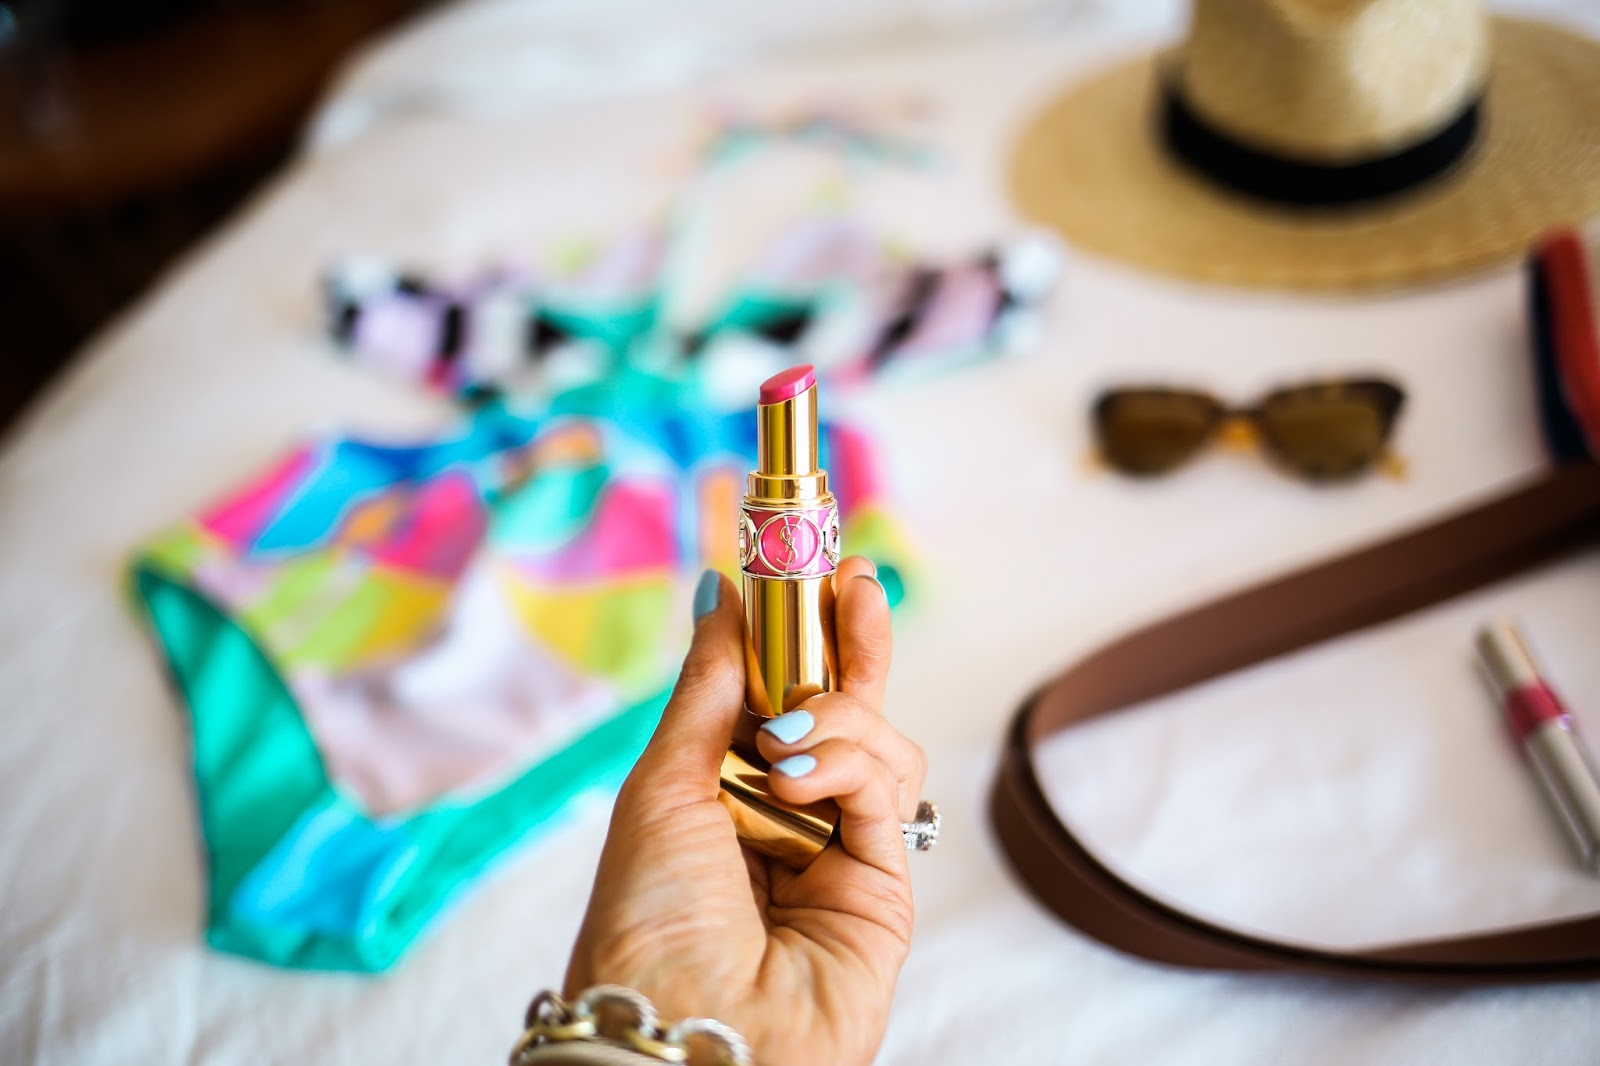 mara hoffman two piece swimsuit, YSL trapeze pink, YSL oil lipstick lipgloss, Brixxton straw hat, emily gemma, the saguaro, palm spring california, The sweetest thing blog, topshop cover up with tassels, white cover up with tassels, pinterest beach vacation outfit ideas, pinterest summer outfit ideas, pinterest swimsuit outfit ideas